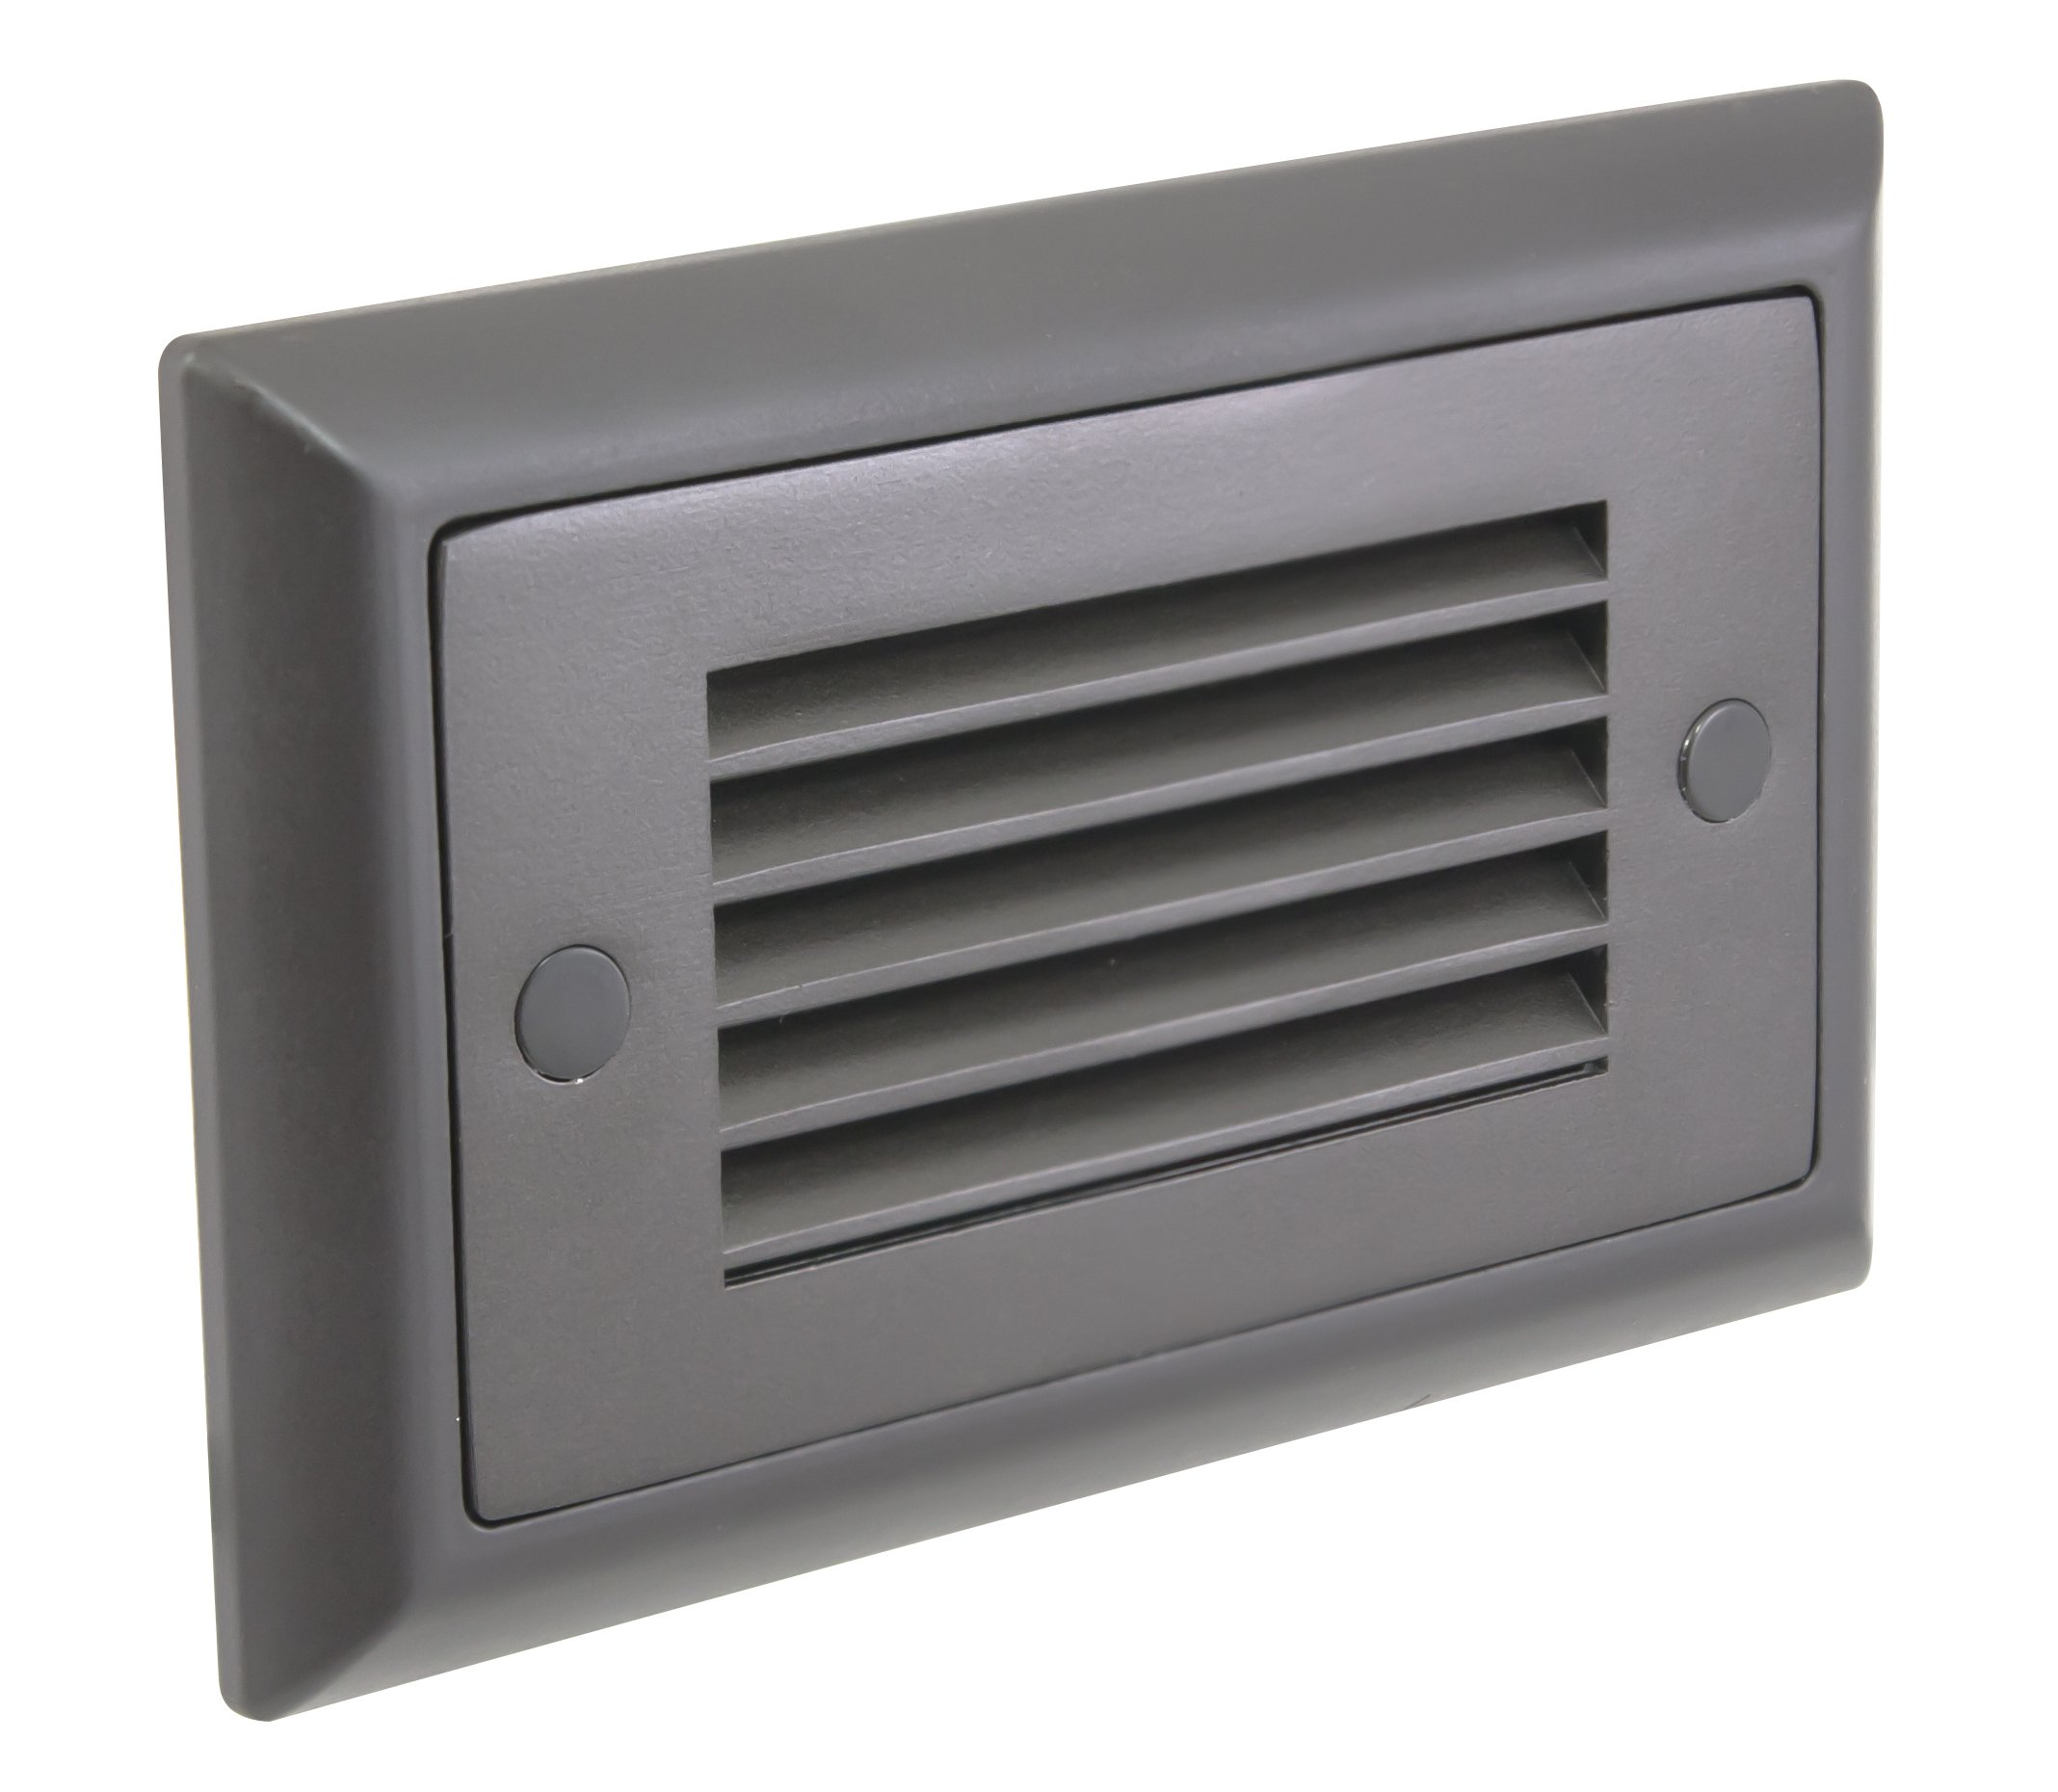 American Lighting SGL-HL-DB Horizontal Louver Faceplate for LED Step Light, Dark Bronze by American Lighting